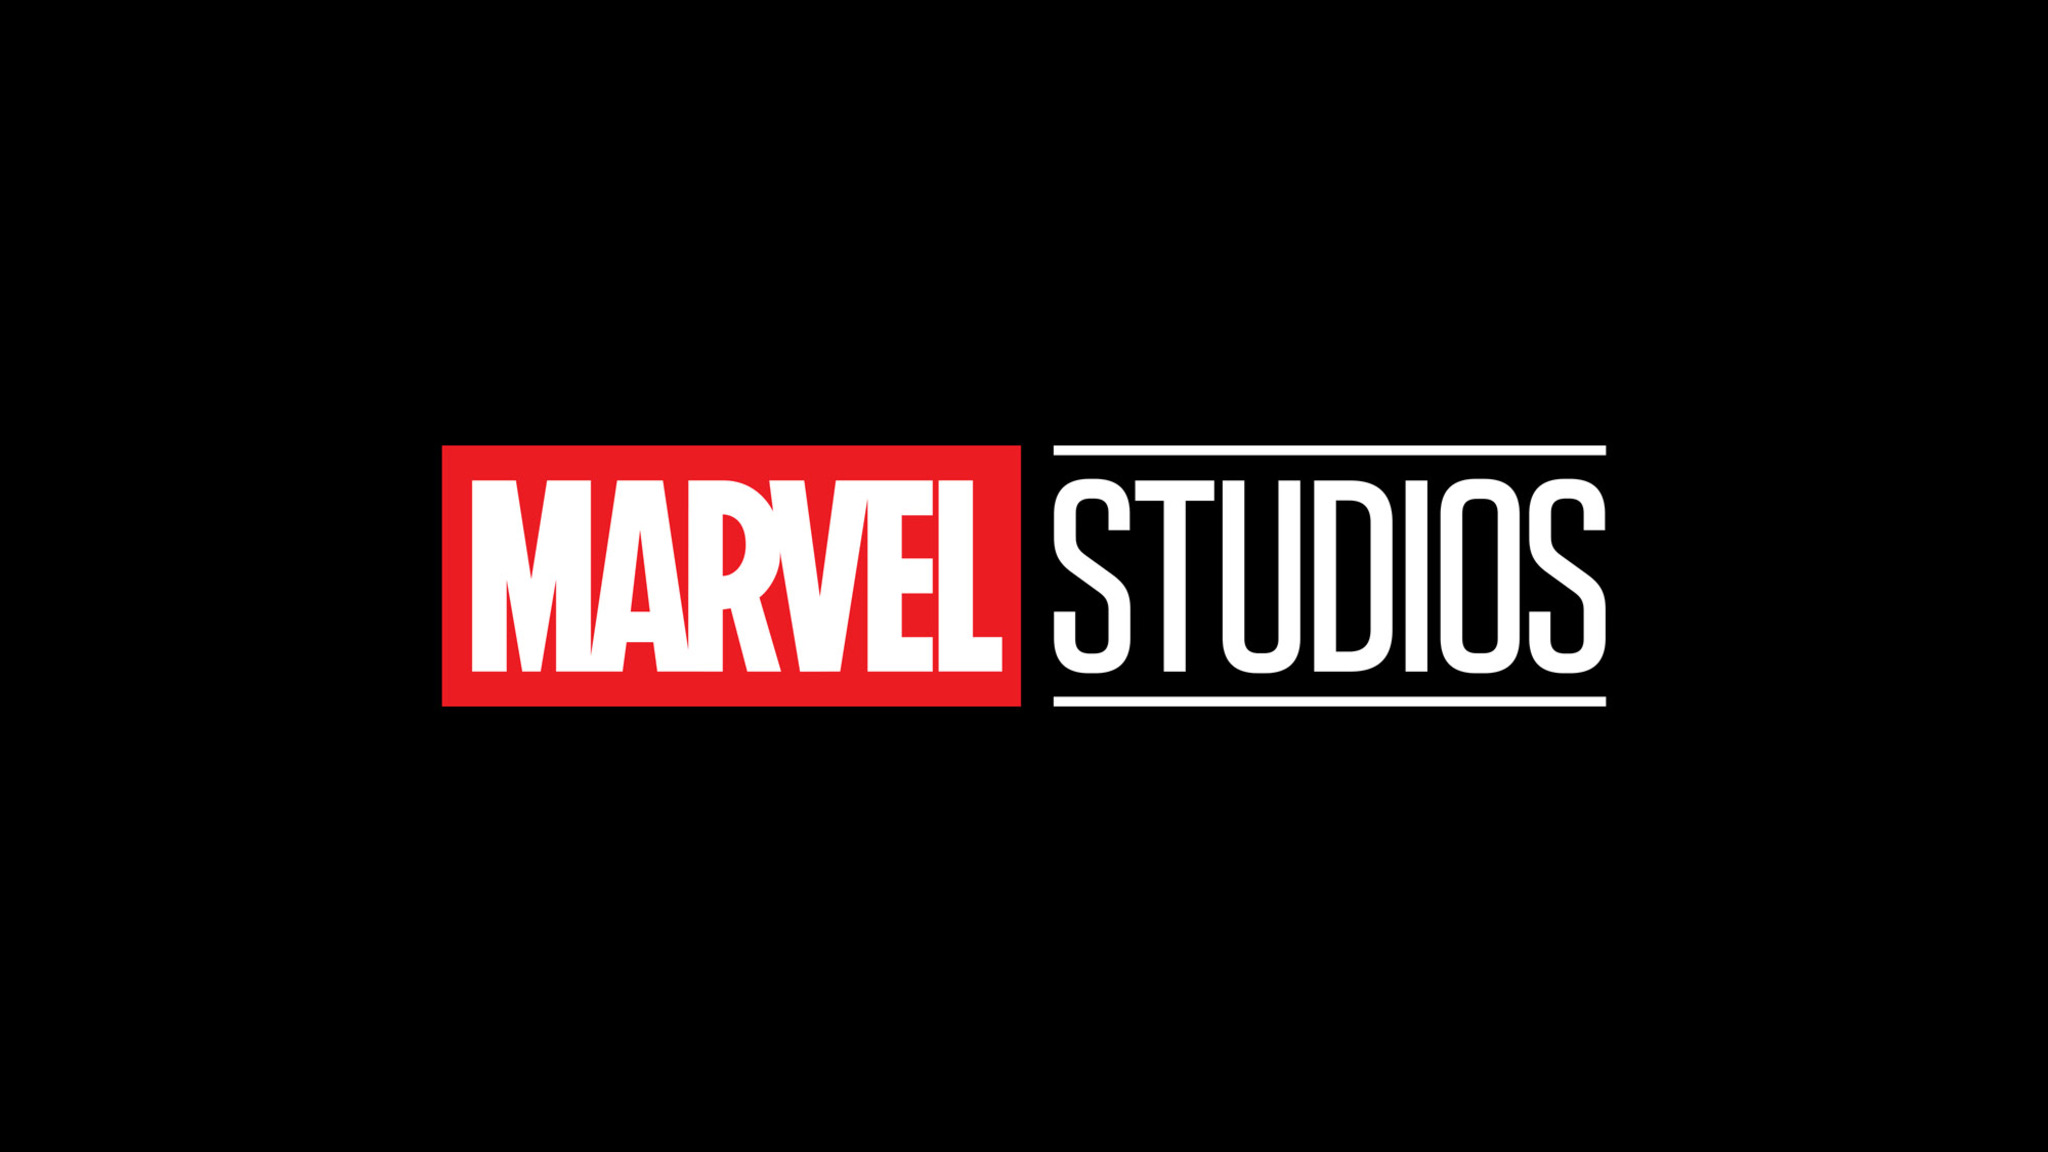 2048x1152 marvel studios new logo 2048x1152 resolution hd 4k